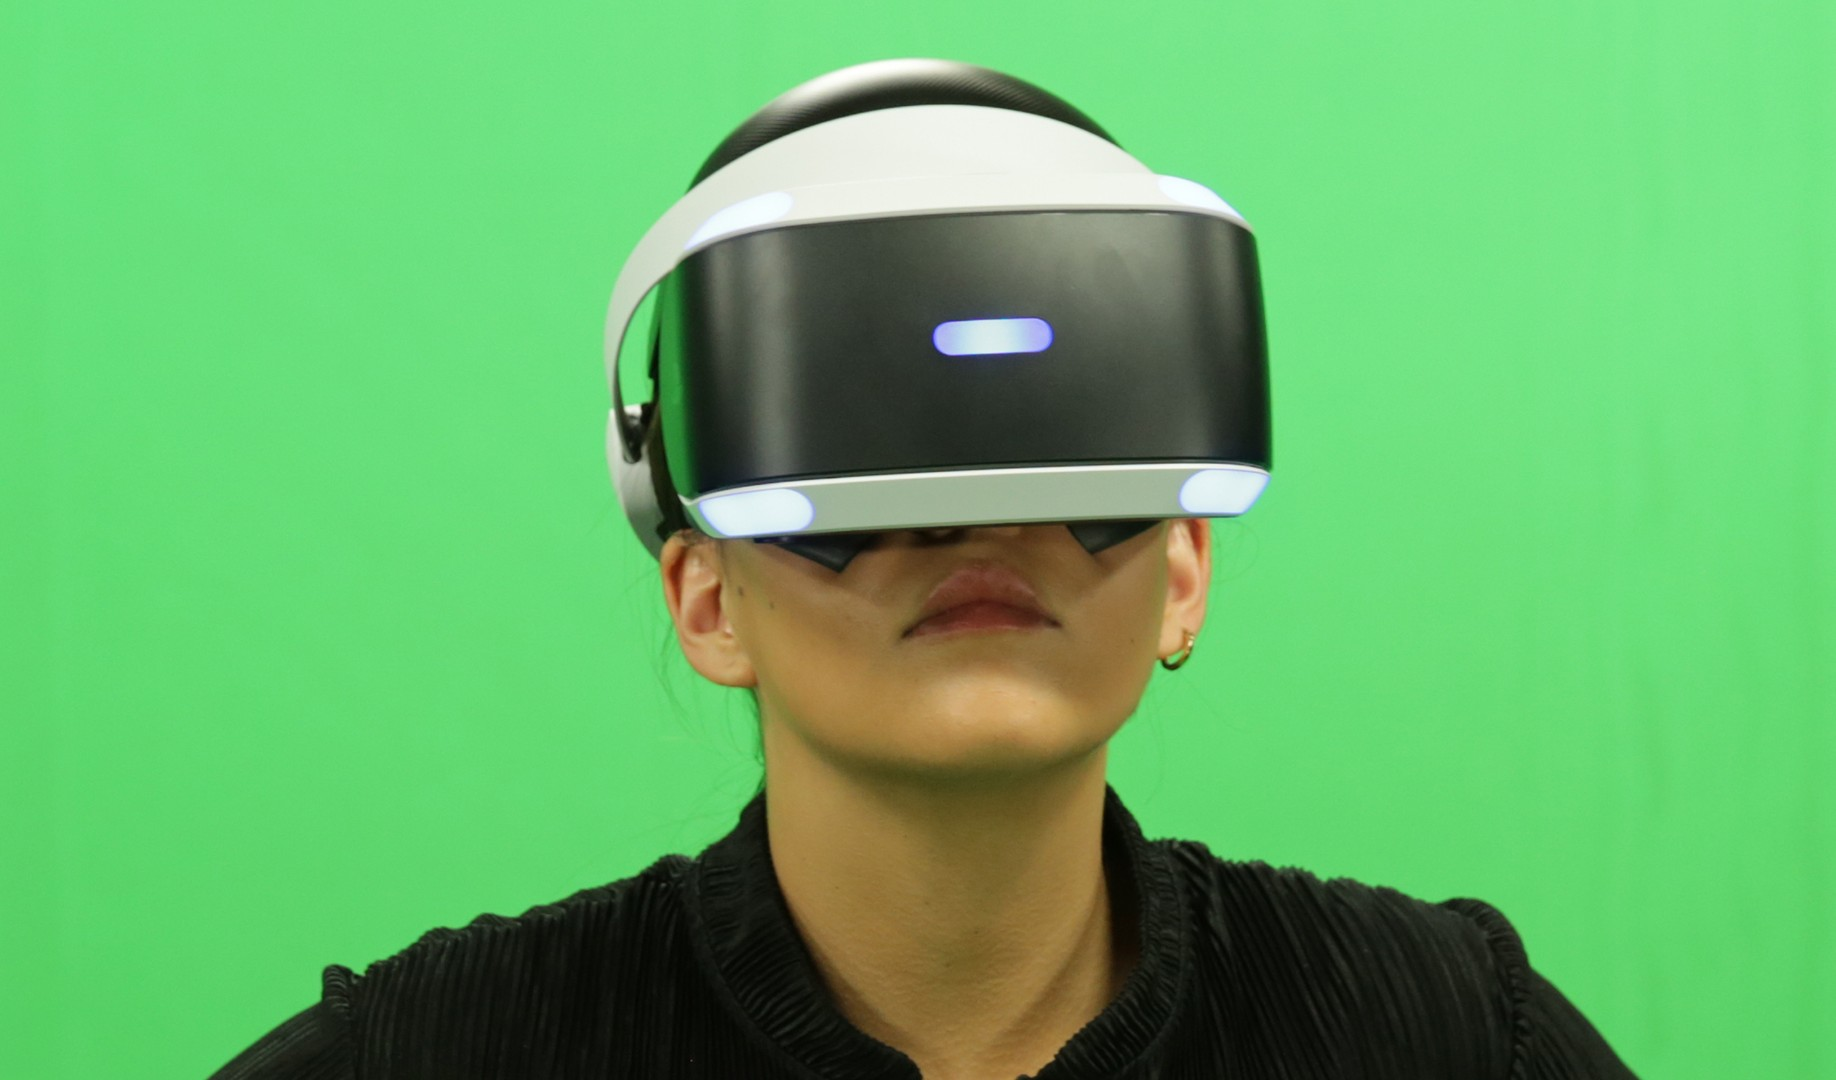 Stepping into the Screen: The Boundaries of the VR Frontier